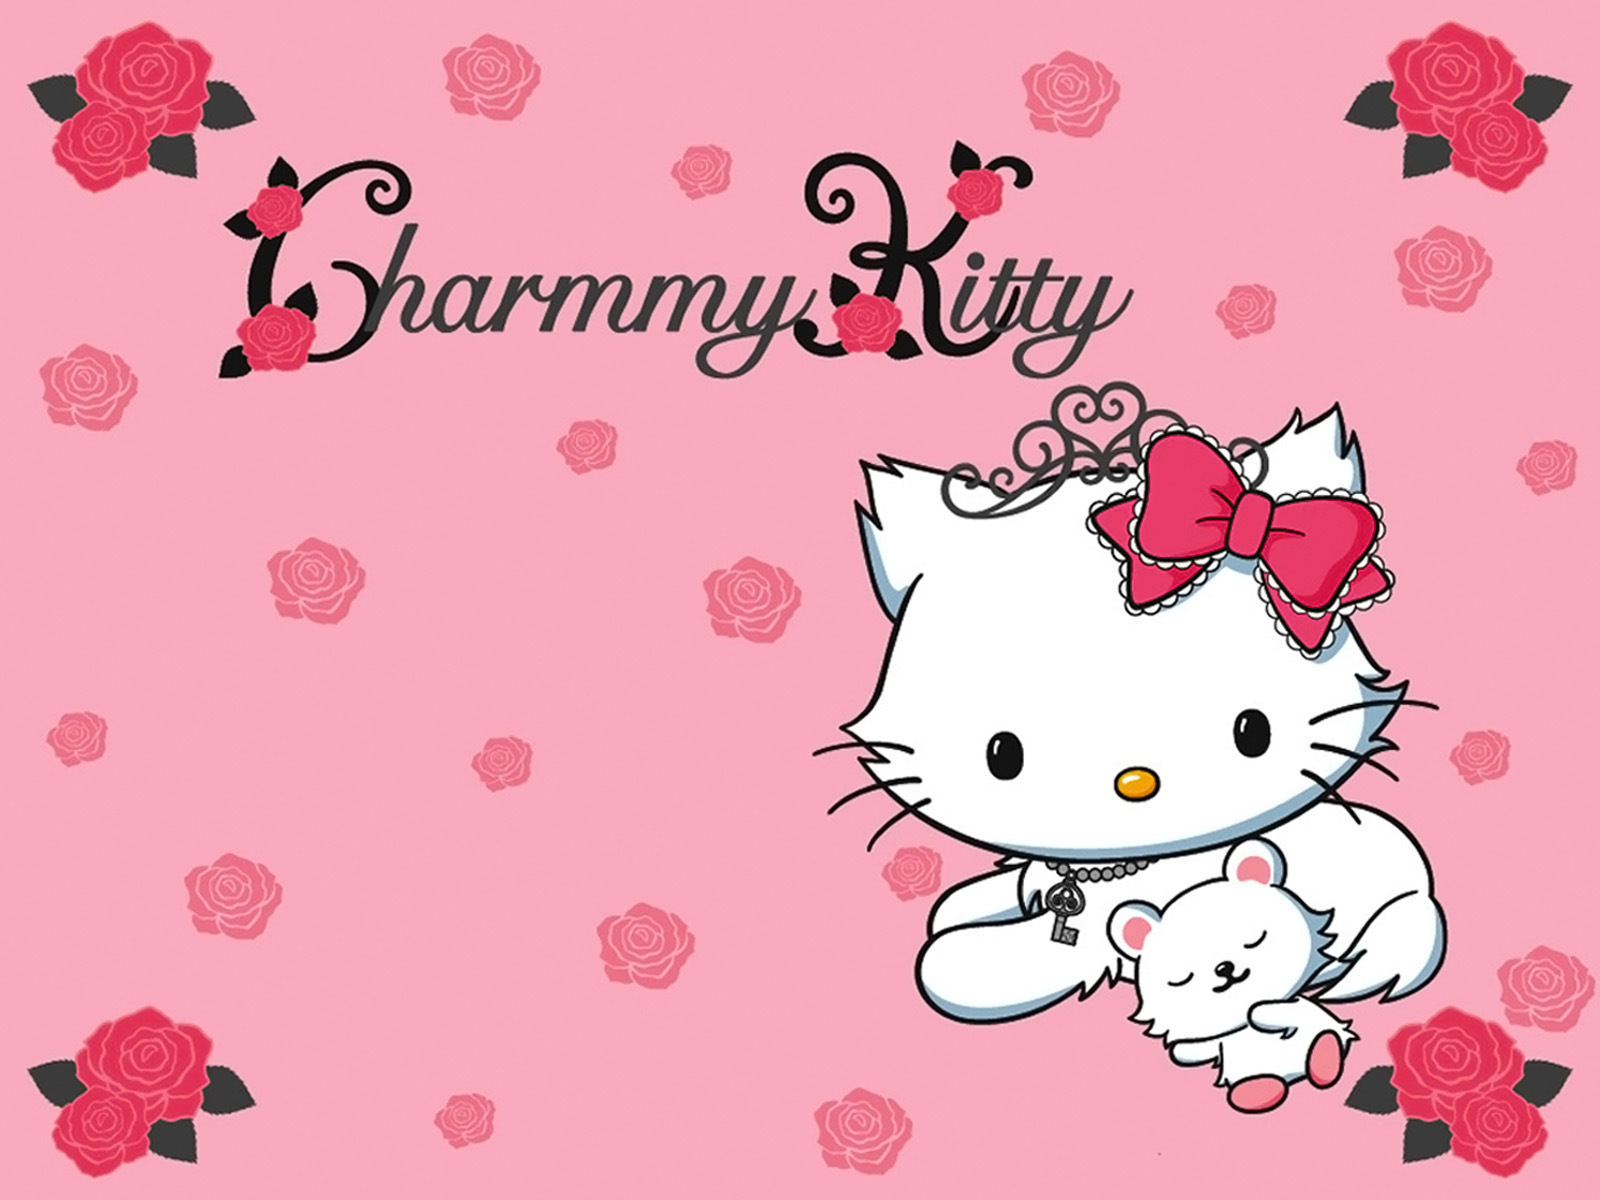 Hello Kitty Wallpaper Lovely - Wallpaper, High Definition, High